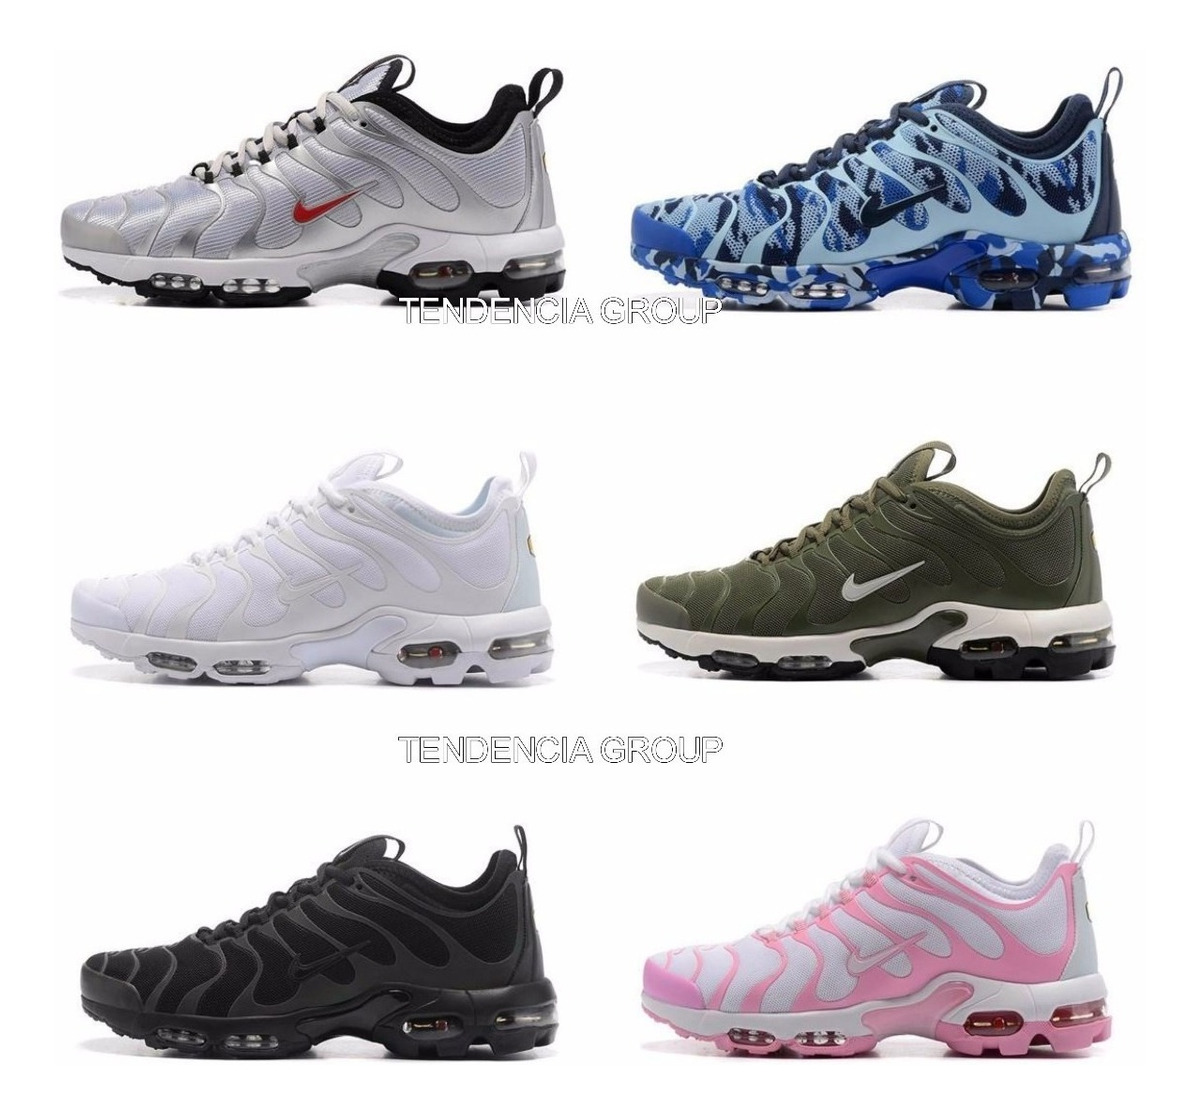 buy popular fe563 a644f Nike Air Max Tn Ultra 90 2018 - 2019 Varon Y Mujer A Pedido